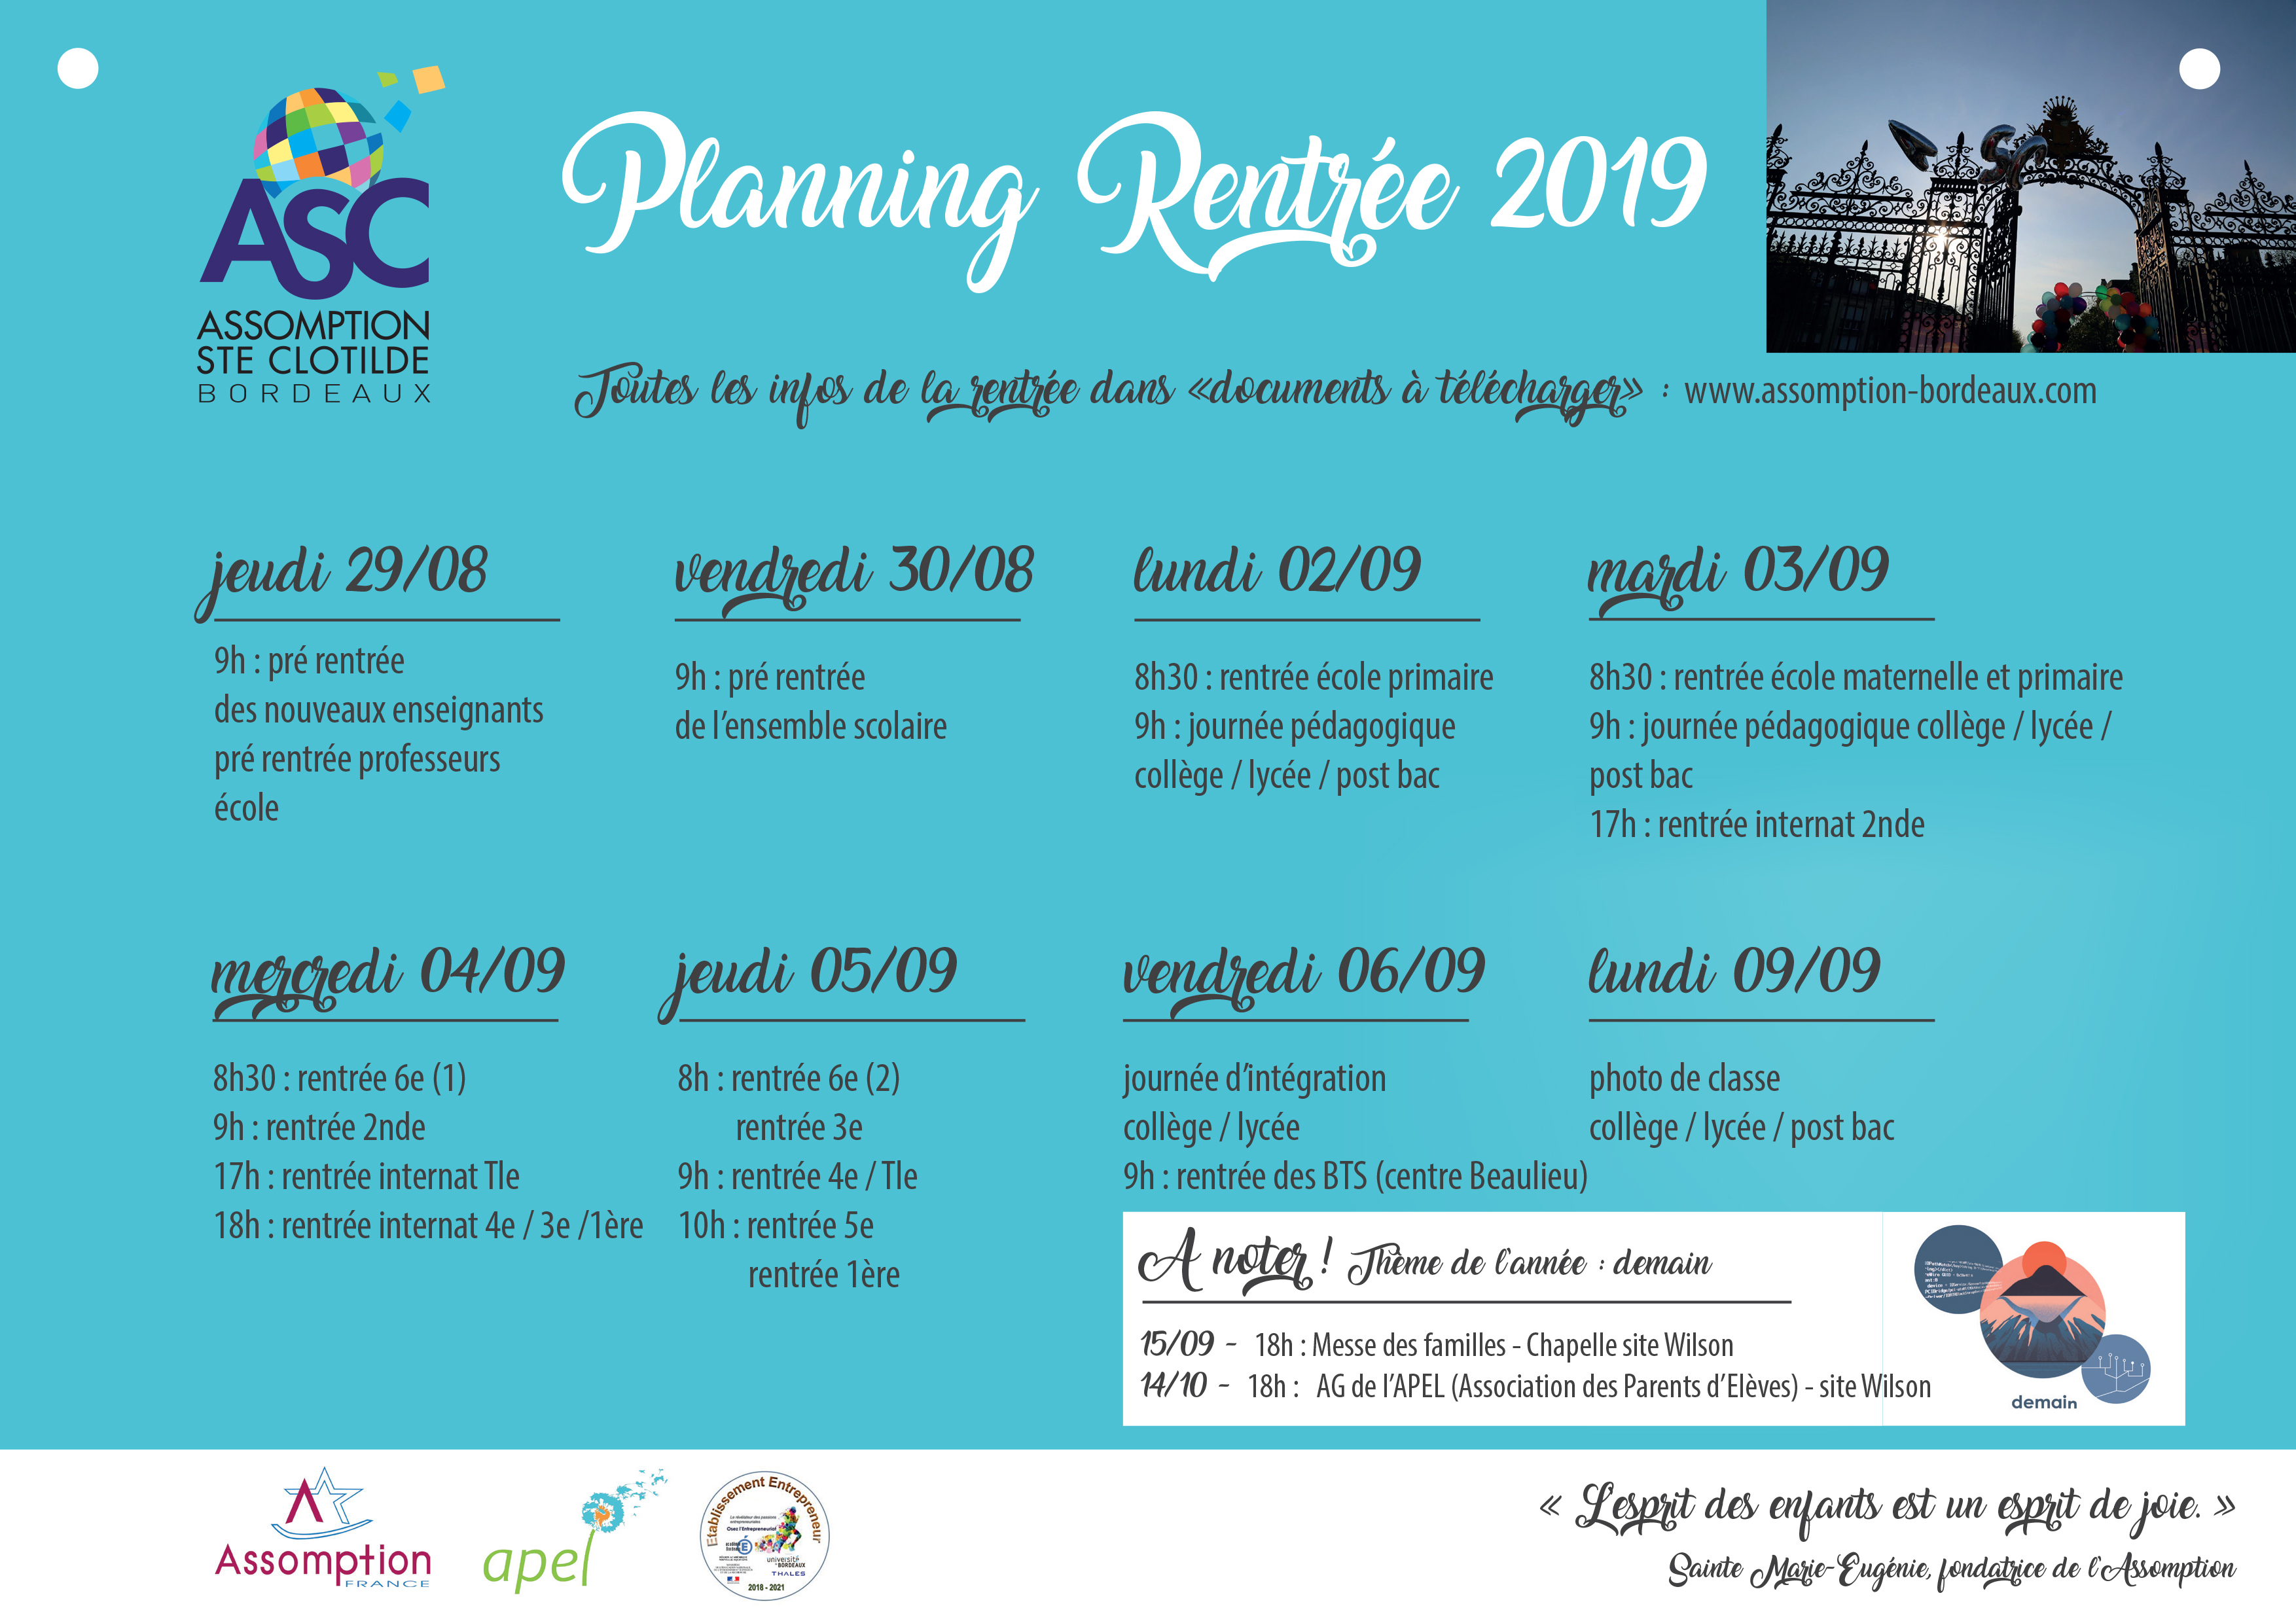 CALENDRIER RENTREE 2019